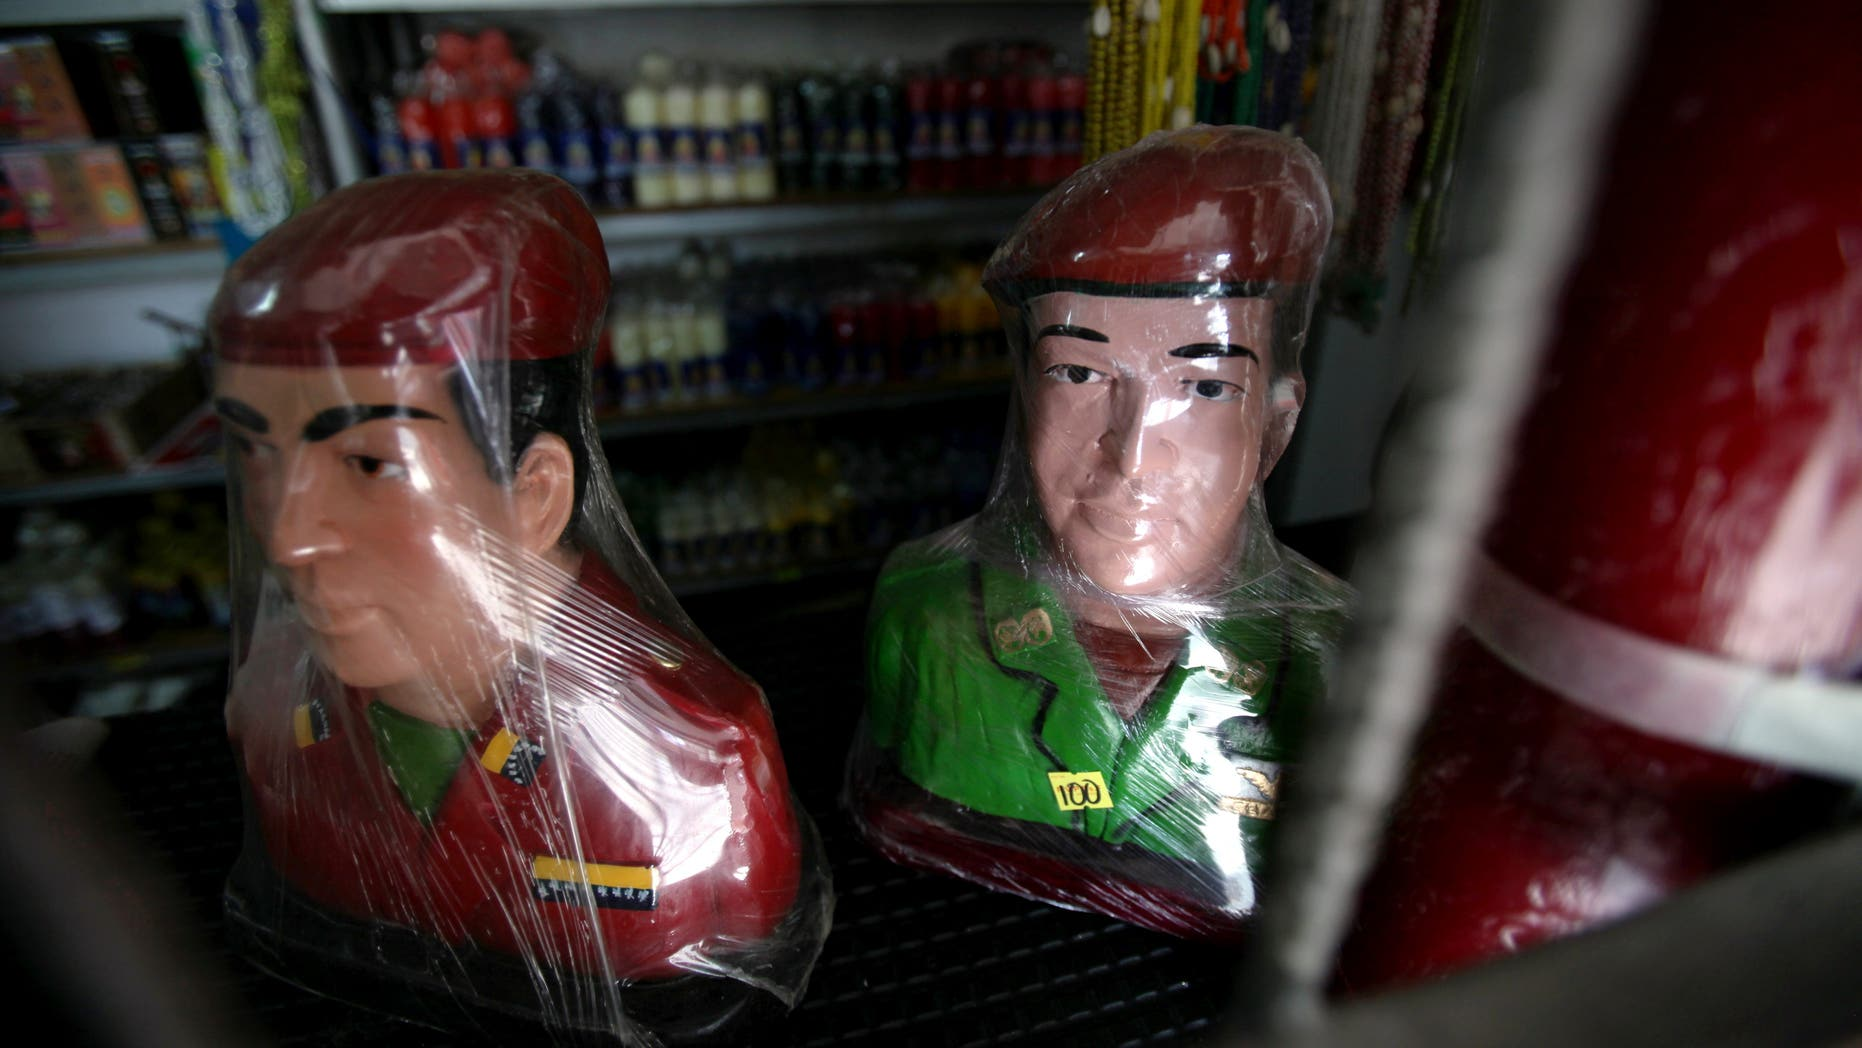 Plastic wrapped busts of Venezuela's late President Hugo Chavez sit for sale at a market in Moron, Venezuela, Thursday, April 25, 2013.  Venezuelan opposition leader Henrique Capriles said Thursday the opposition would go to the Supreme Court to challenge the results of the April 14 presidential vote, which was narrowly won by Chavez's political heir, Nicolas Maduro.  (AP Photo/Fernando Llano)